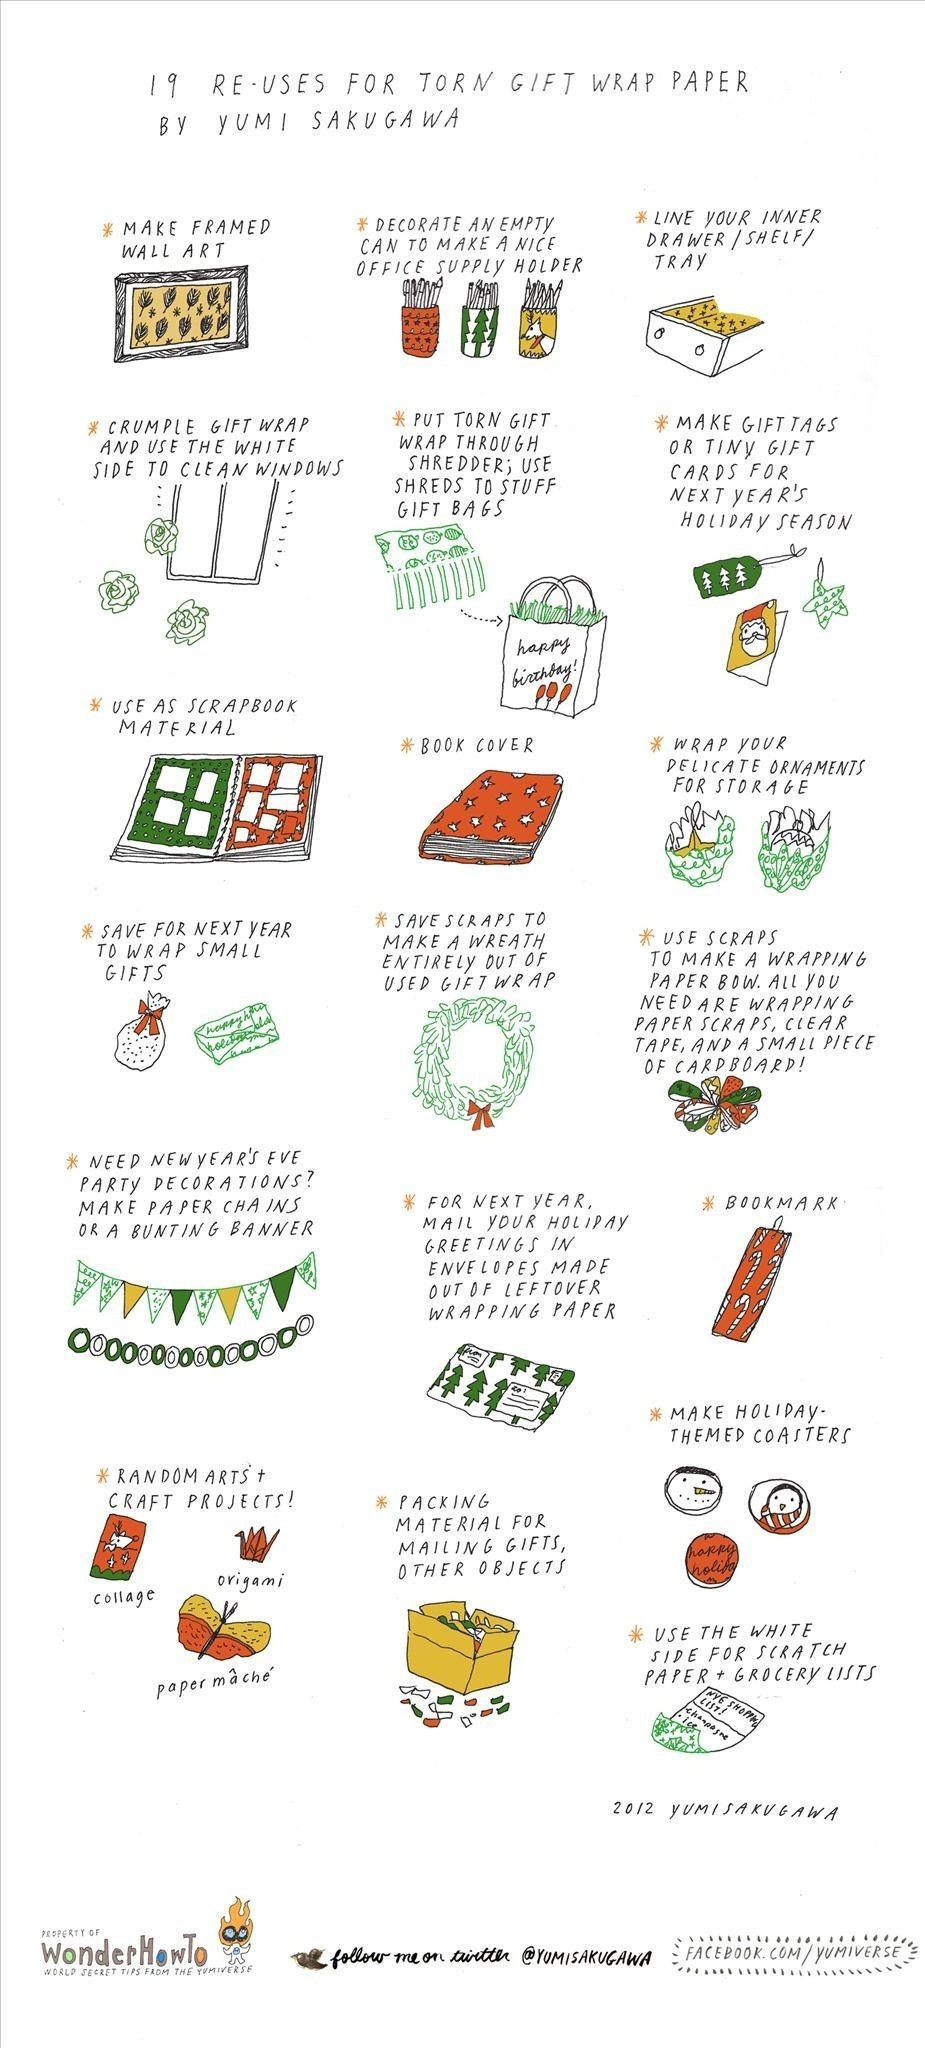 19 Ways to Reuse Torn Gift Wrap Paper